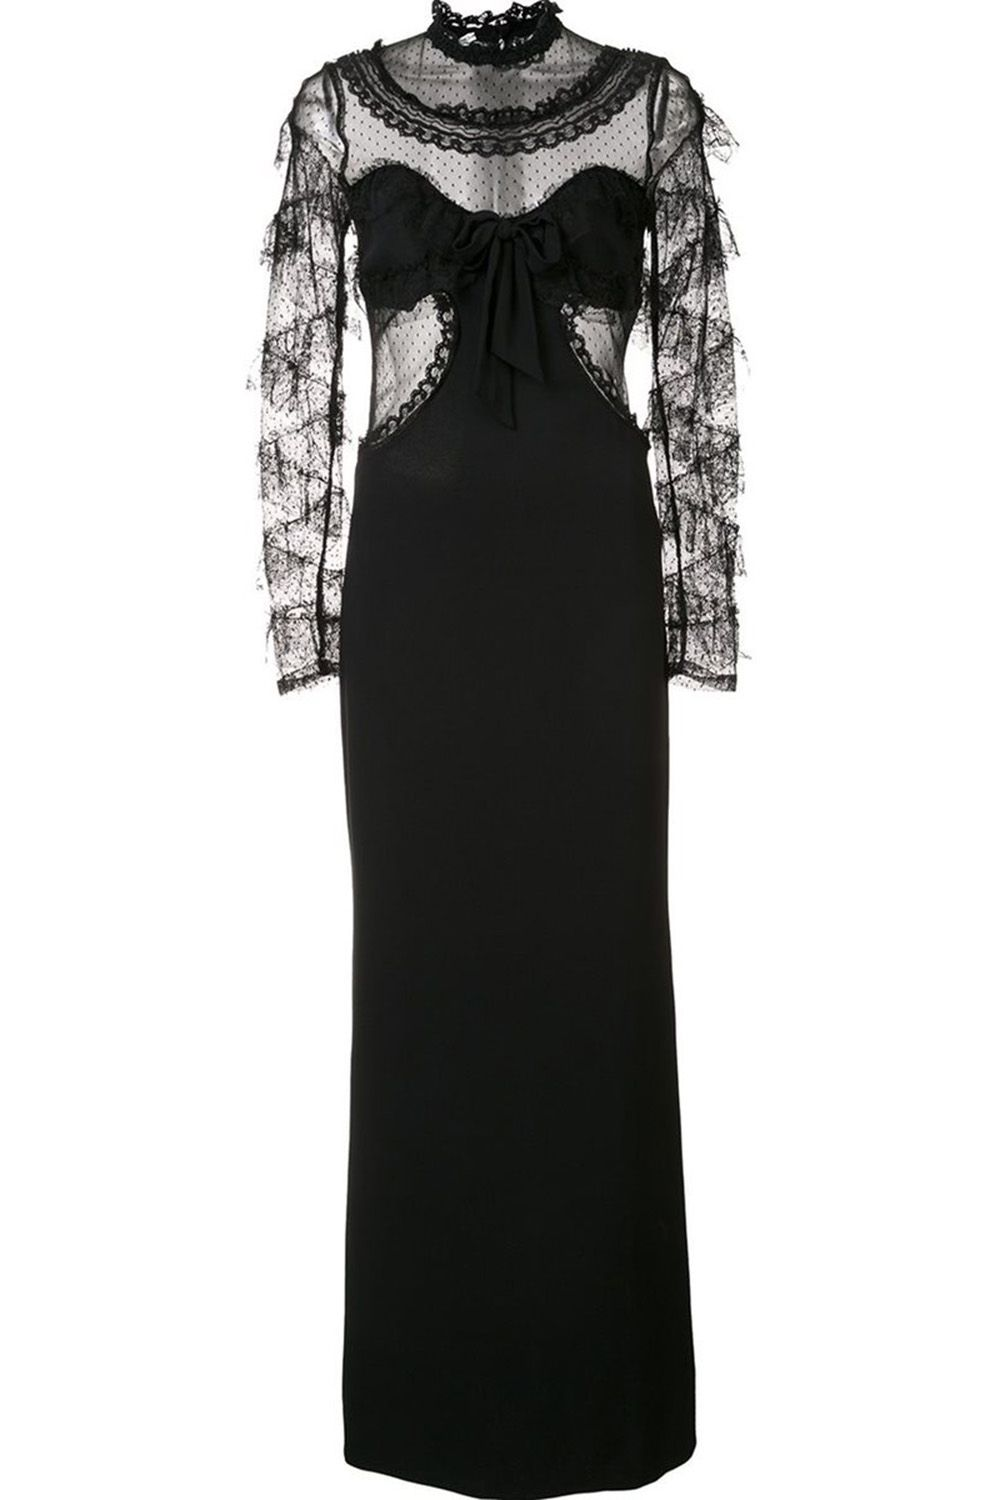 "<p>Fashionable and flattering, a long-sleeve lace black dress is perennially<span class=""redactor-invisible-space""></span><span class=""redactor-invisible-space""></span> pretty. </p><p><em data-redactor-tag=""em"" data-verified=""redactor"">Alessandra Rich dress, $1,965, <strong data-redactor-tag=""strong"" data-verified=""redactor""><a href=""https://shop.harpersbazaar.com/a/alessandra-rich/sheer-longsleeved-dress-10609.html"" target=""_blank"" data-tracking-id=""recirc-text-link"">shopBAZAAR.com.</a></strong></em> </p>"